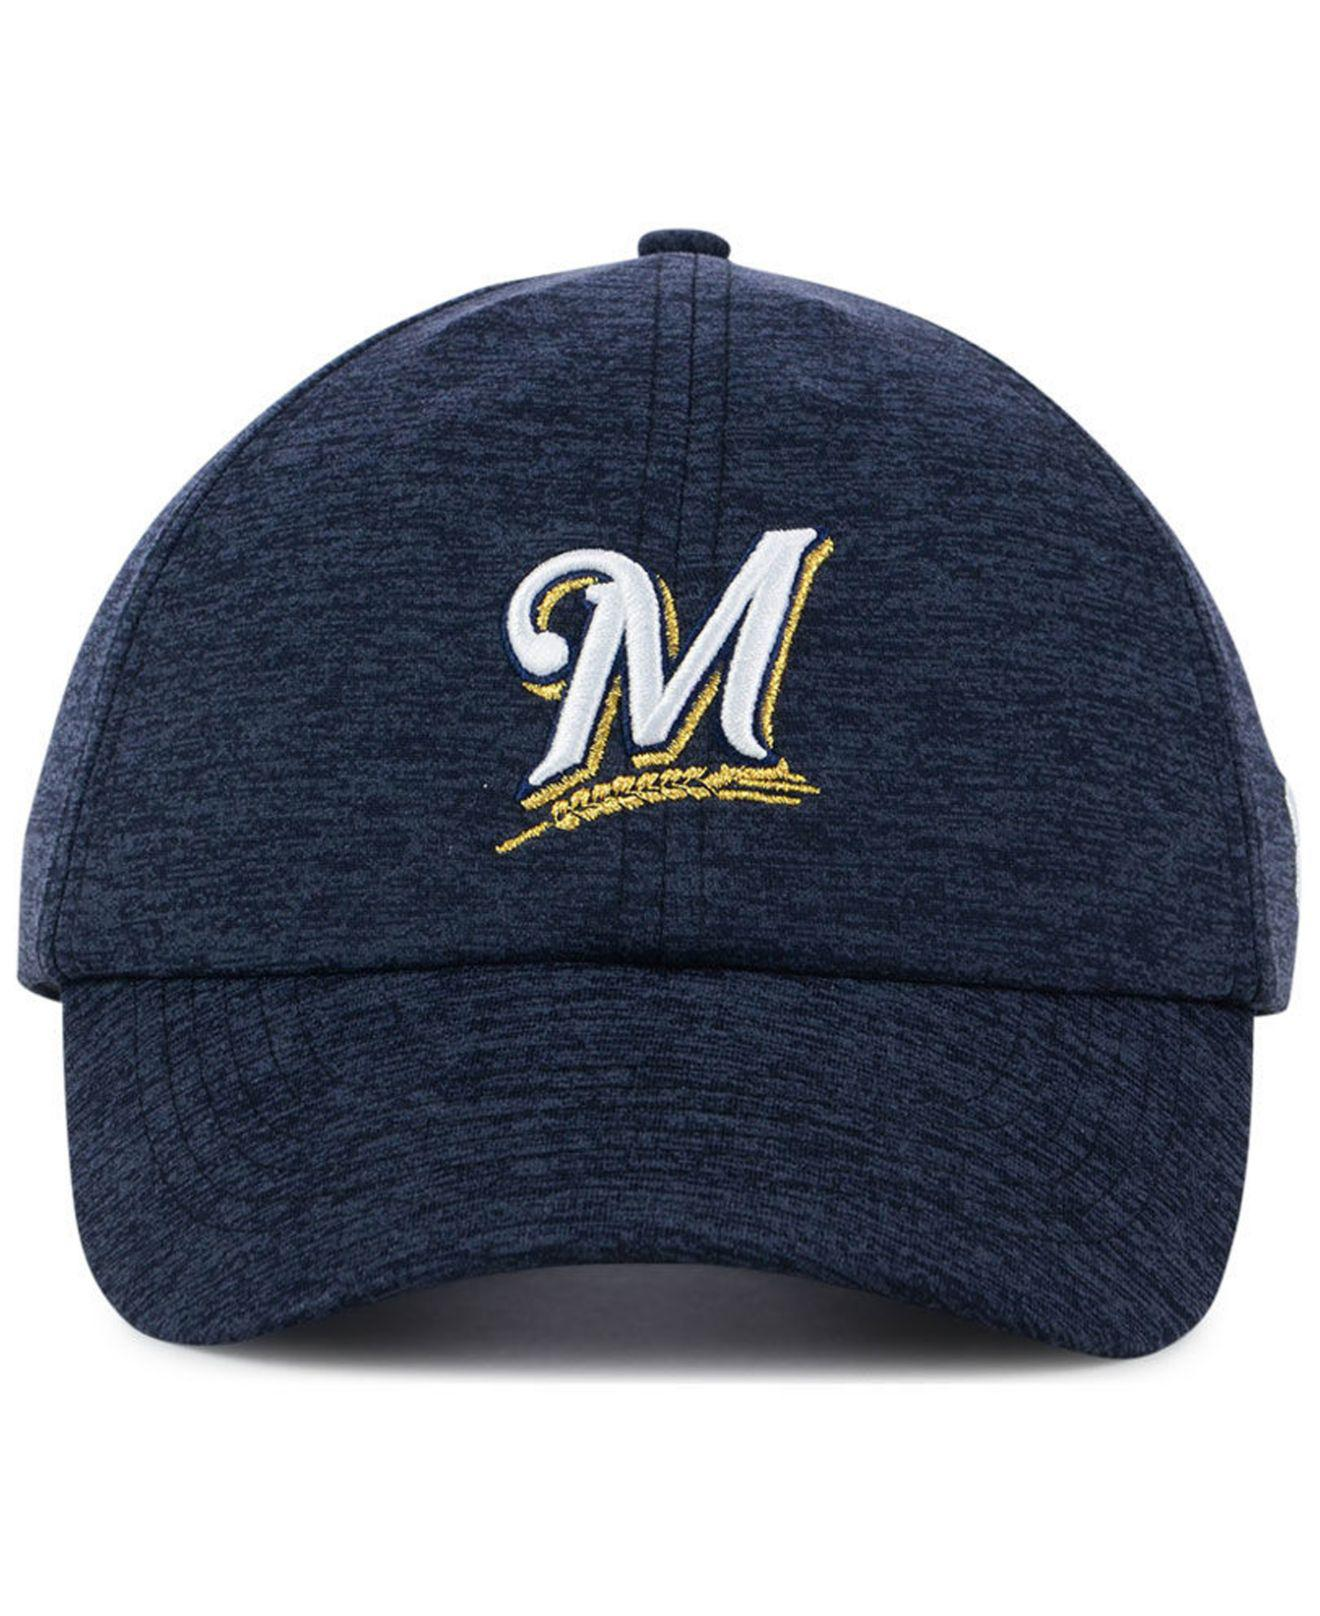 11739e98927 Lyst - Under Armour Milwaukee Brewers Renegade Twist Cap in Blue